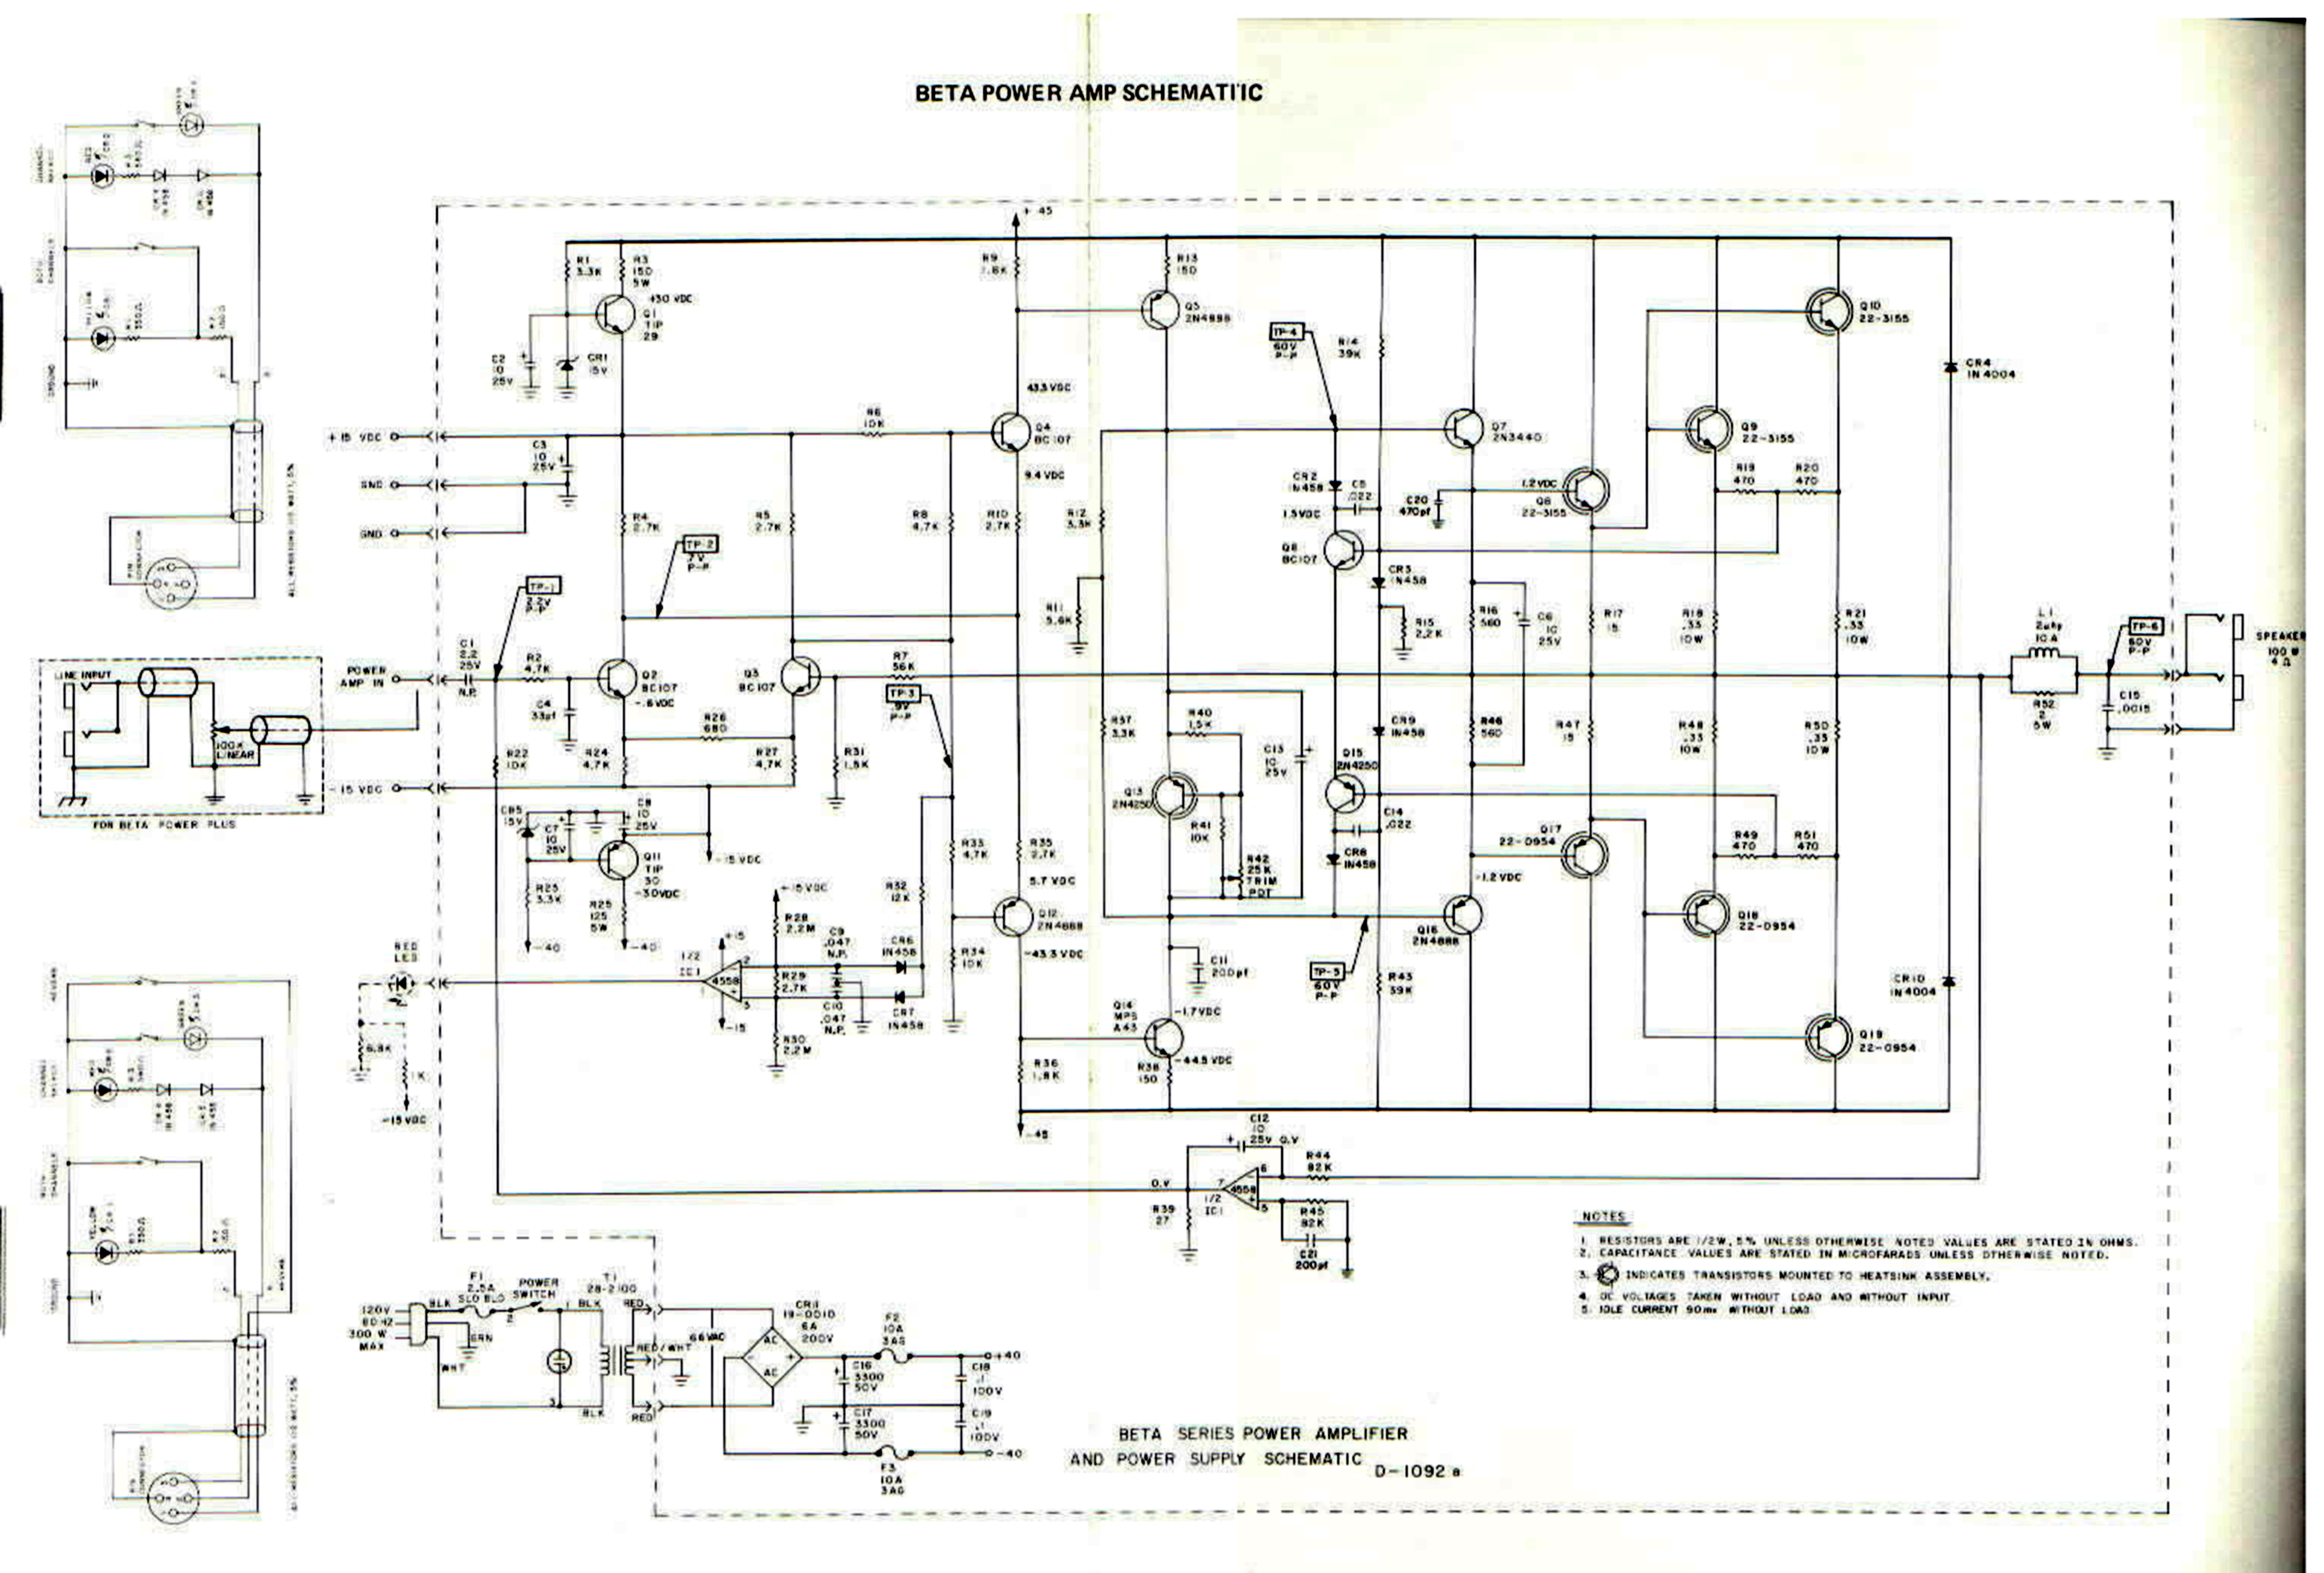 Sunn Amp Schematic Auto Electrical Wiring Diagram For Mercury 150 Xr2